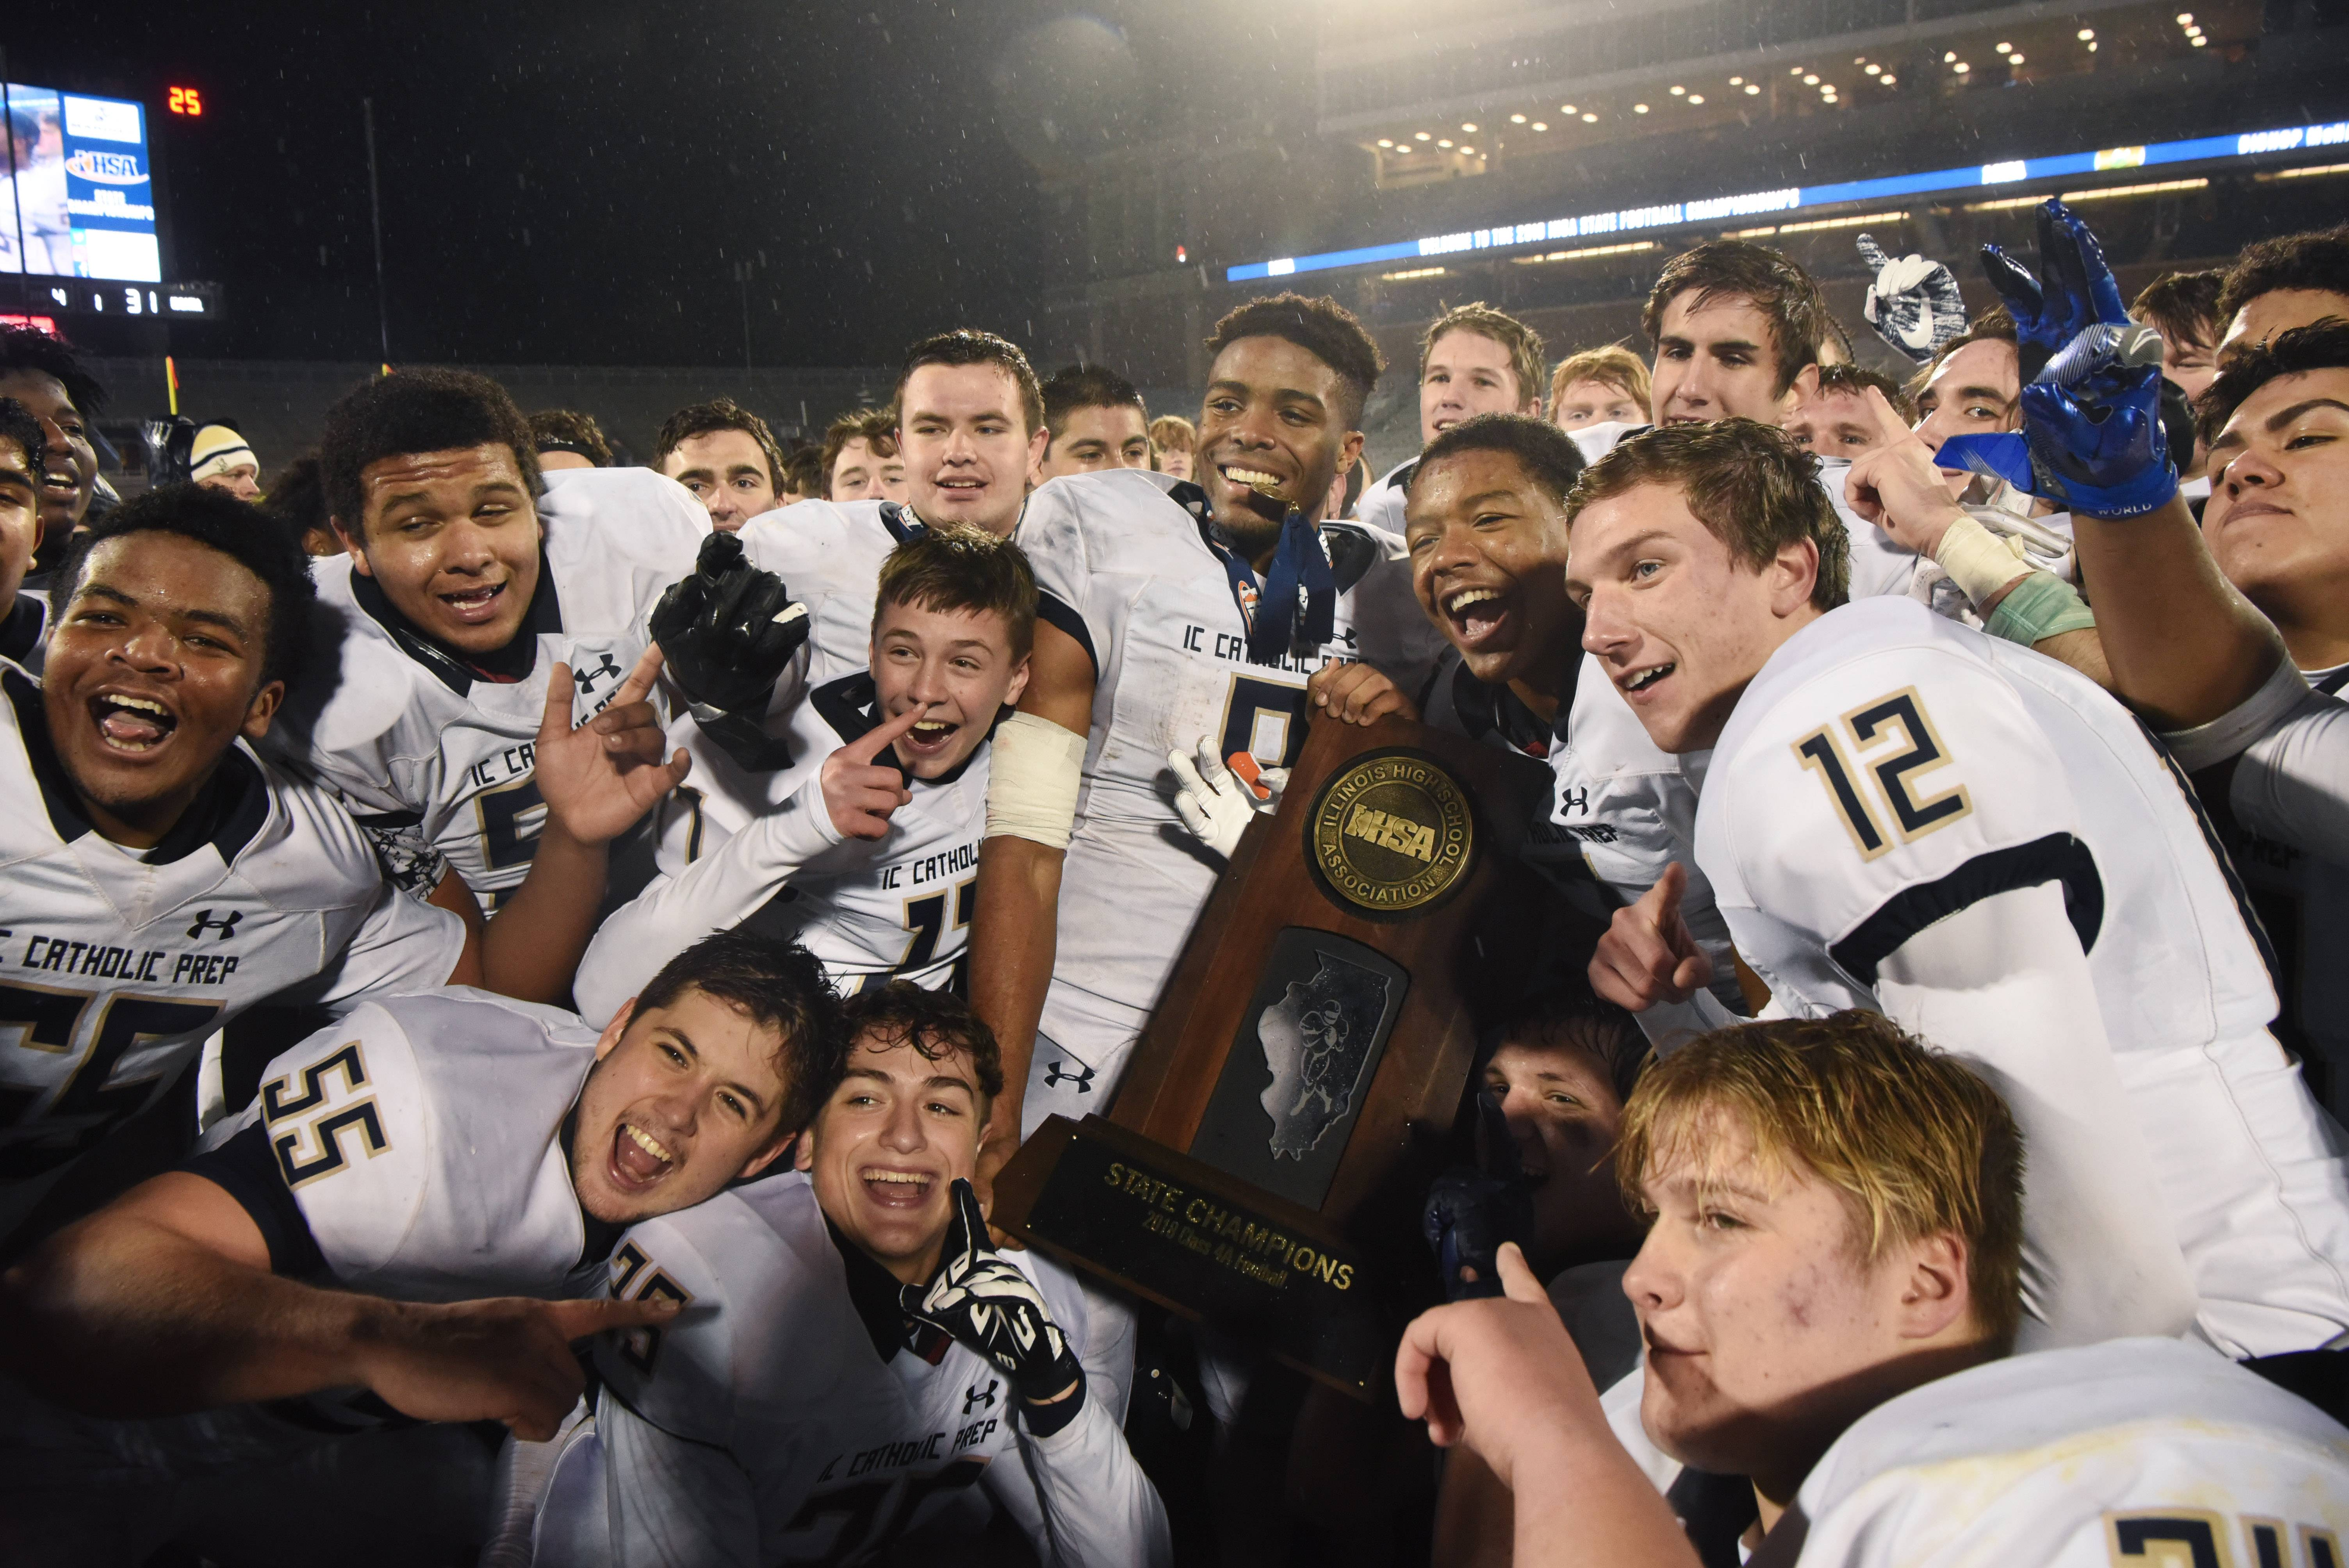 IC Catholic players celebrate with their trophy following the Class 4A state football championship at Memorial Stadium in Champaign Friday. IC Catholic defeated Bishop McNamara 31-21.